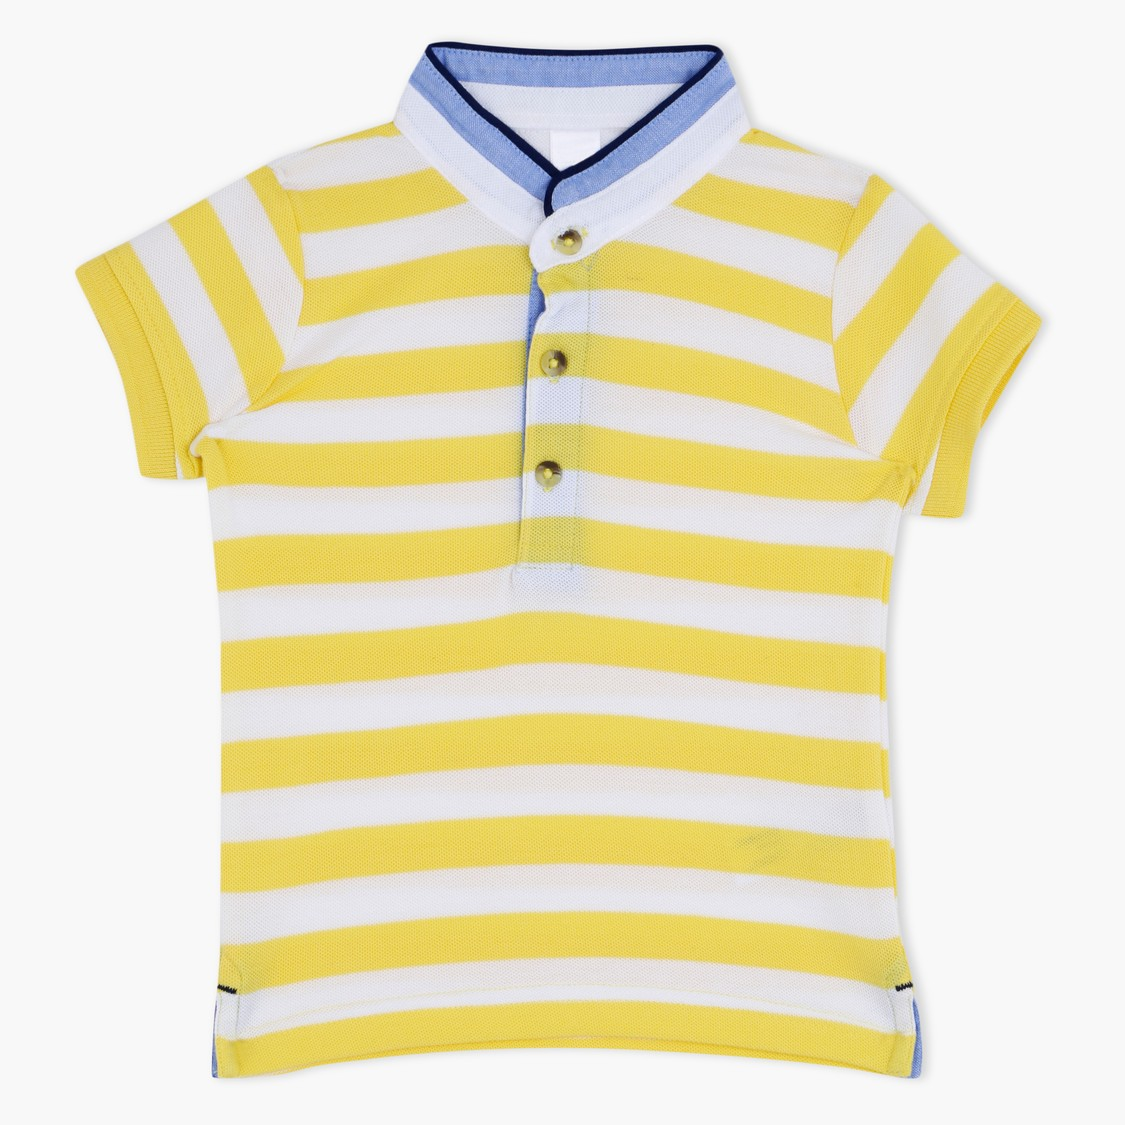 Striped T-Shirt with Short Sleeves and Double Henley Collar